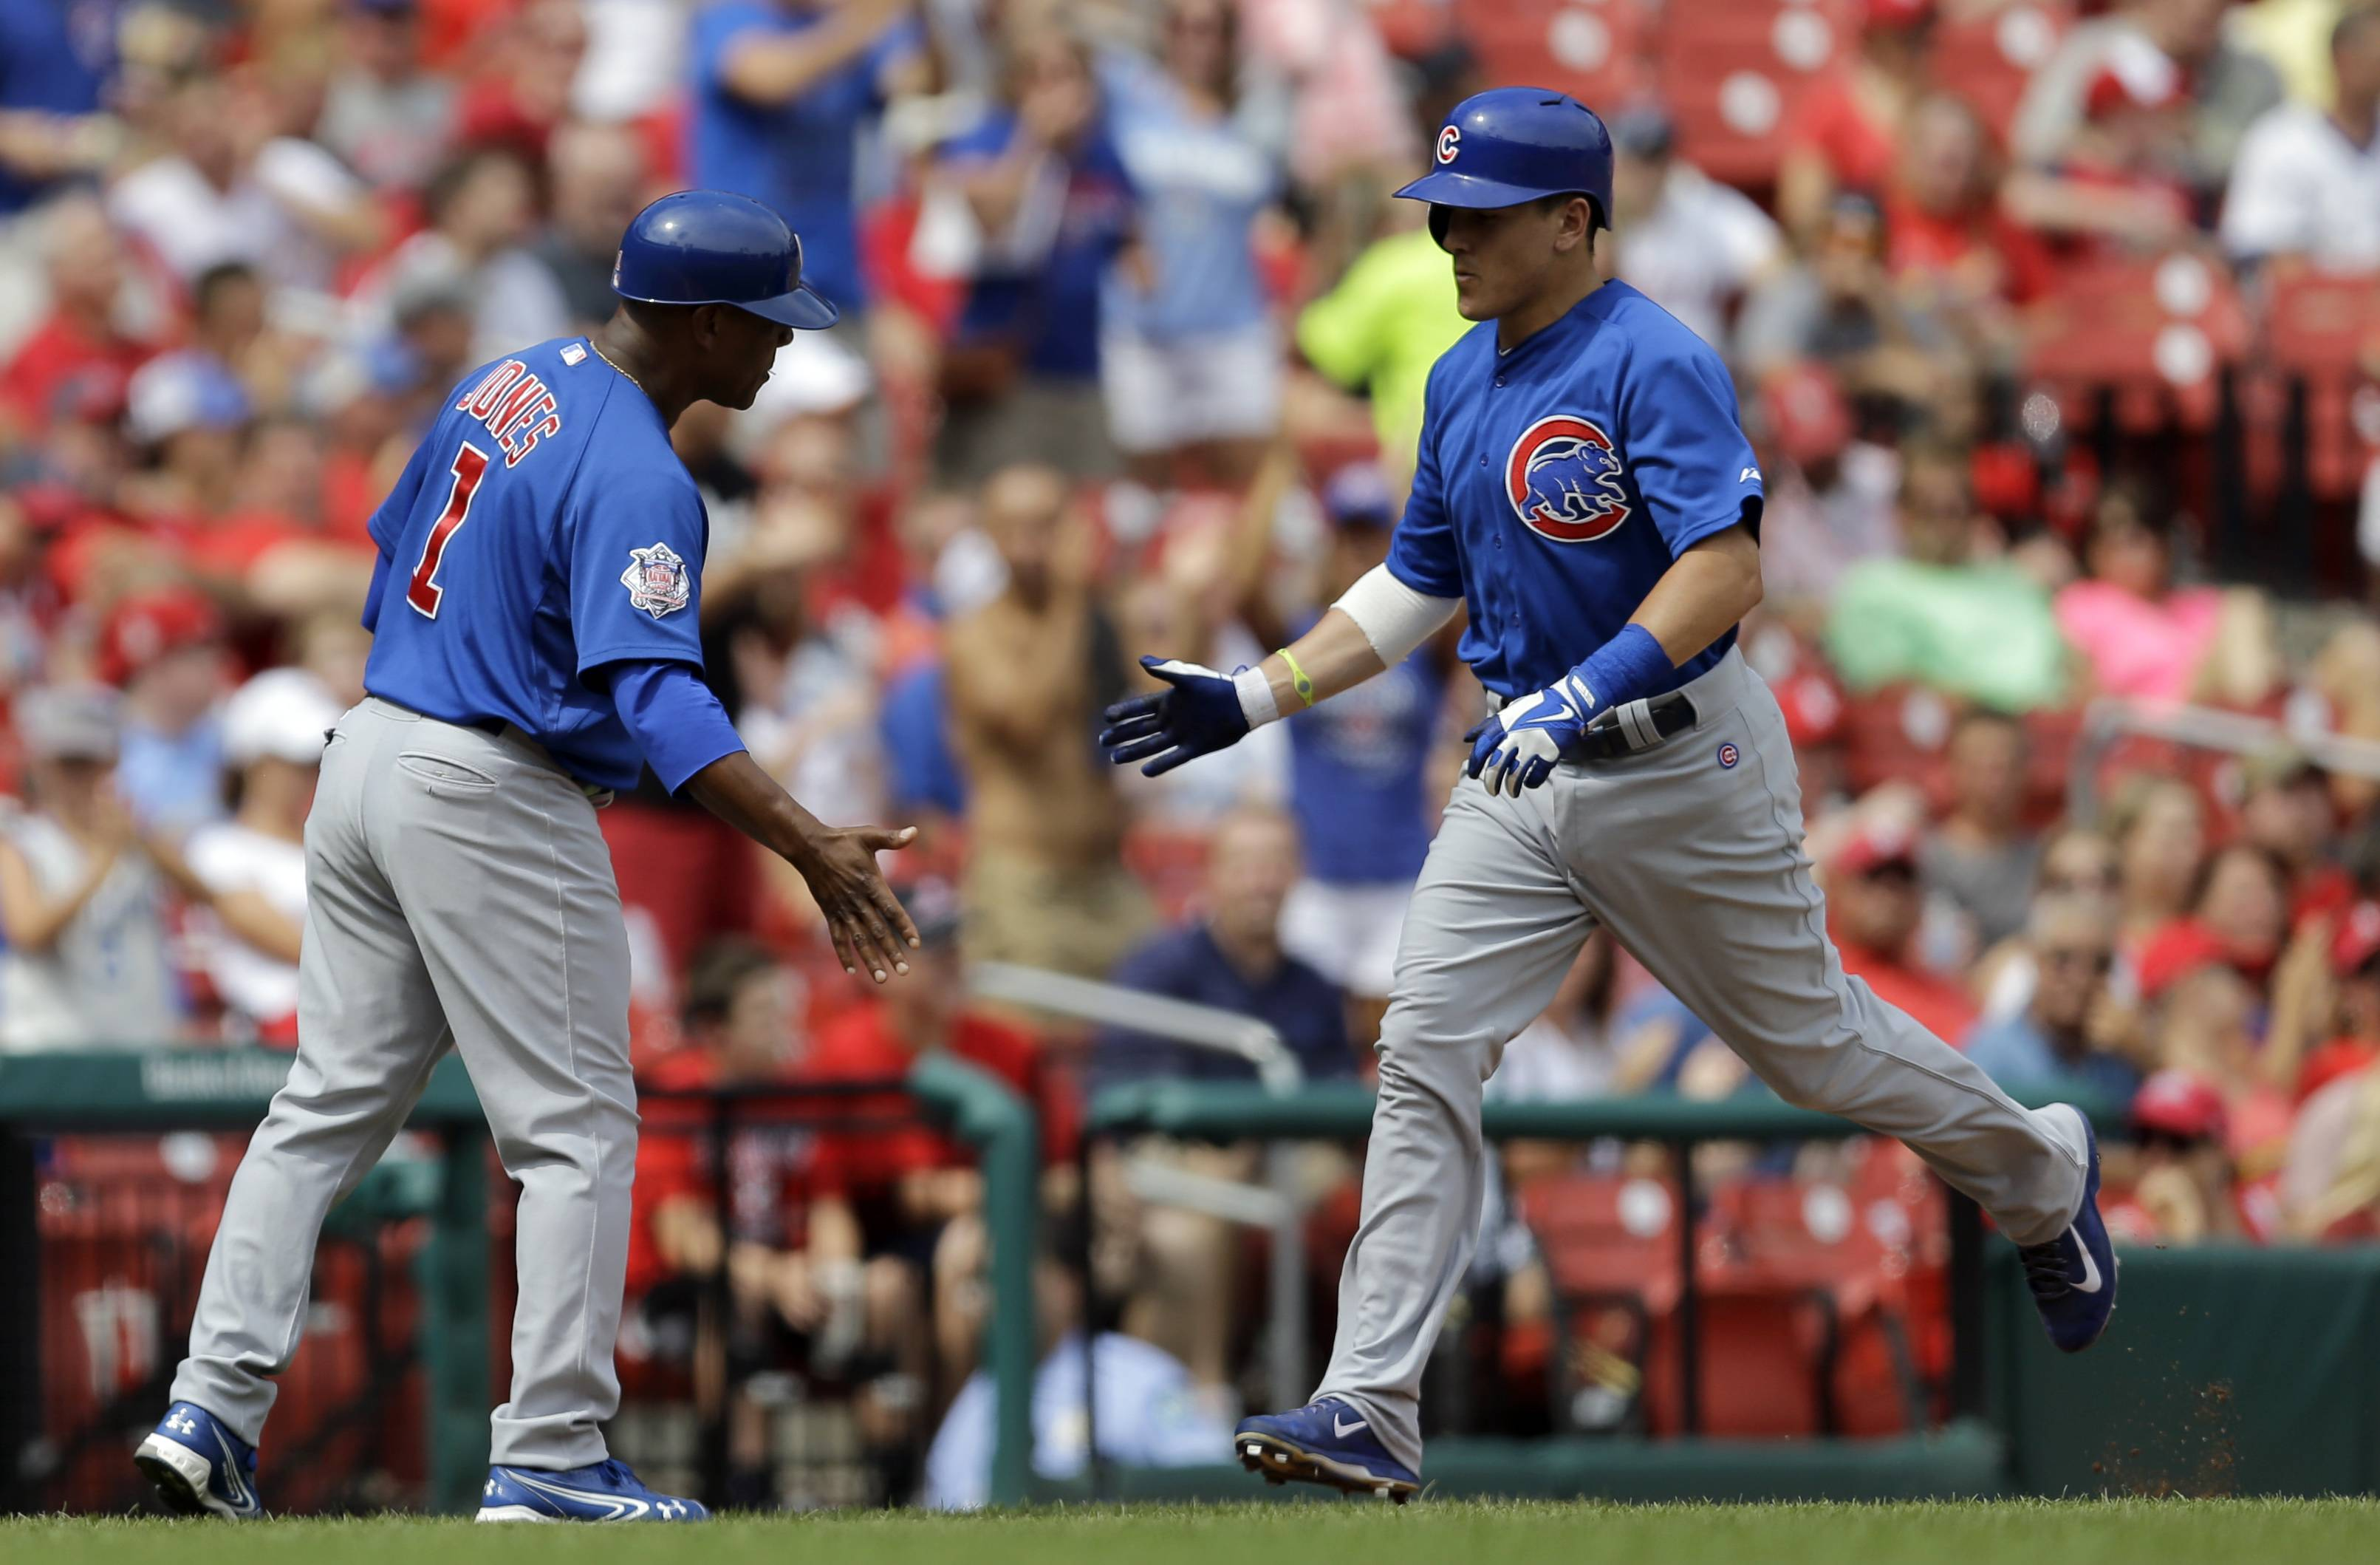 Chicago Cubs' Logan Watkins, right, is congratulated by third base coach Gary Jones while rounding the bases after hitting a solo home run during the fourth inning in the first baseball game of a doubleheader against the St. Louis Cardinals, Saturday, Aug. 30, 2014, in St. Louis.